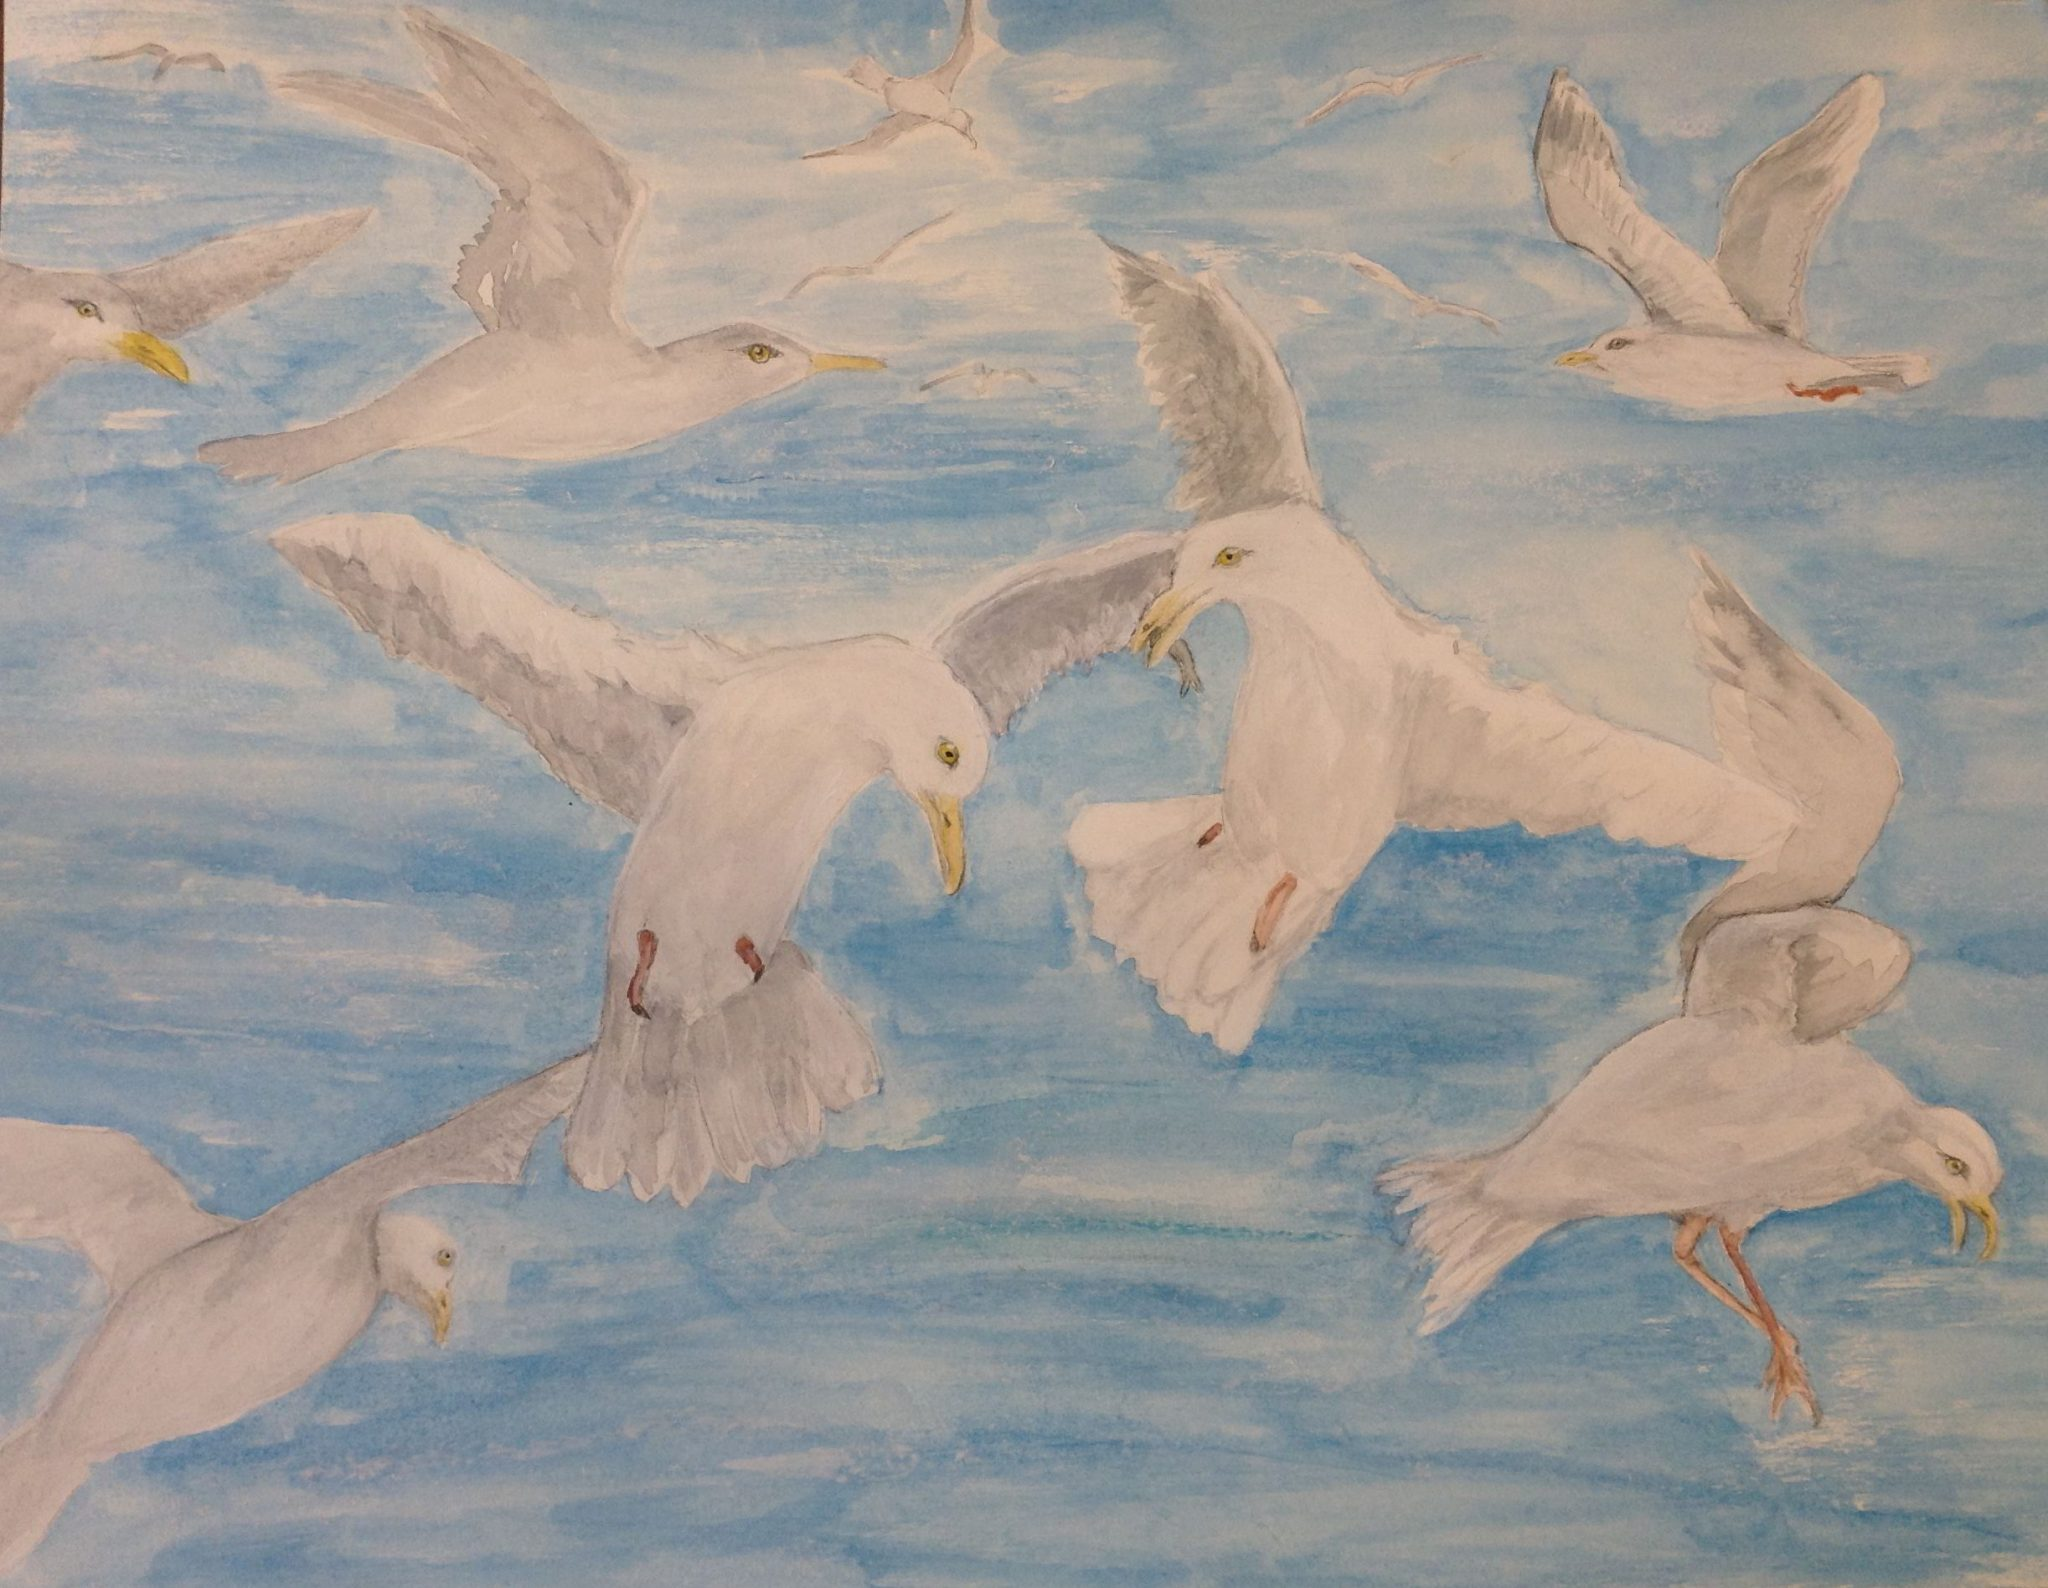 A watercolour painting of seagulls